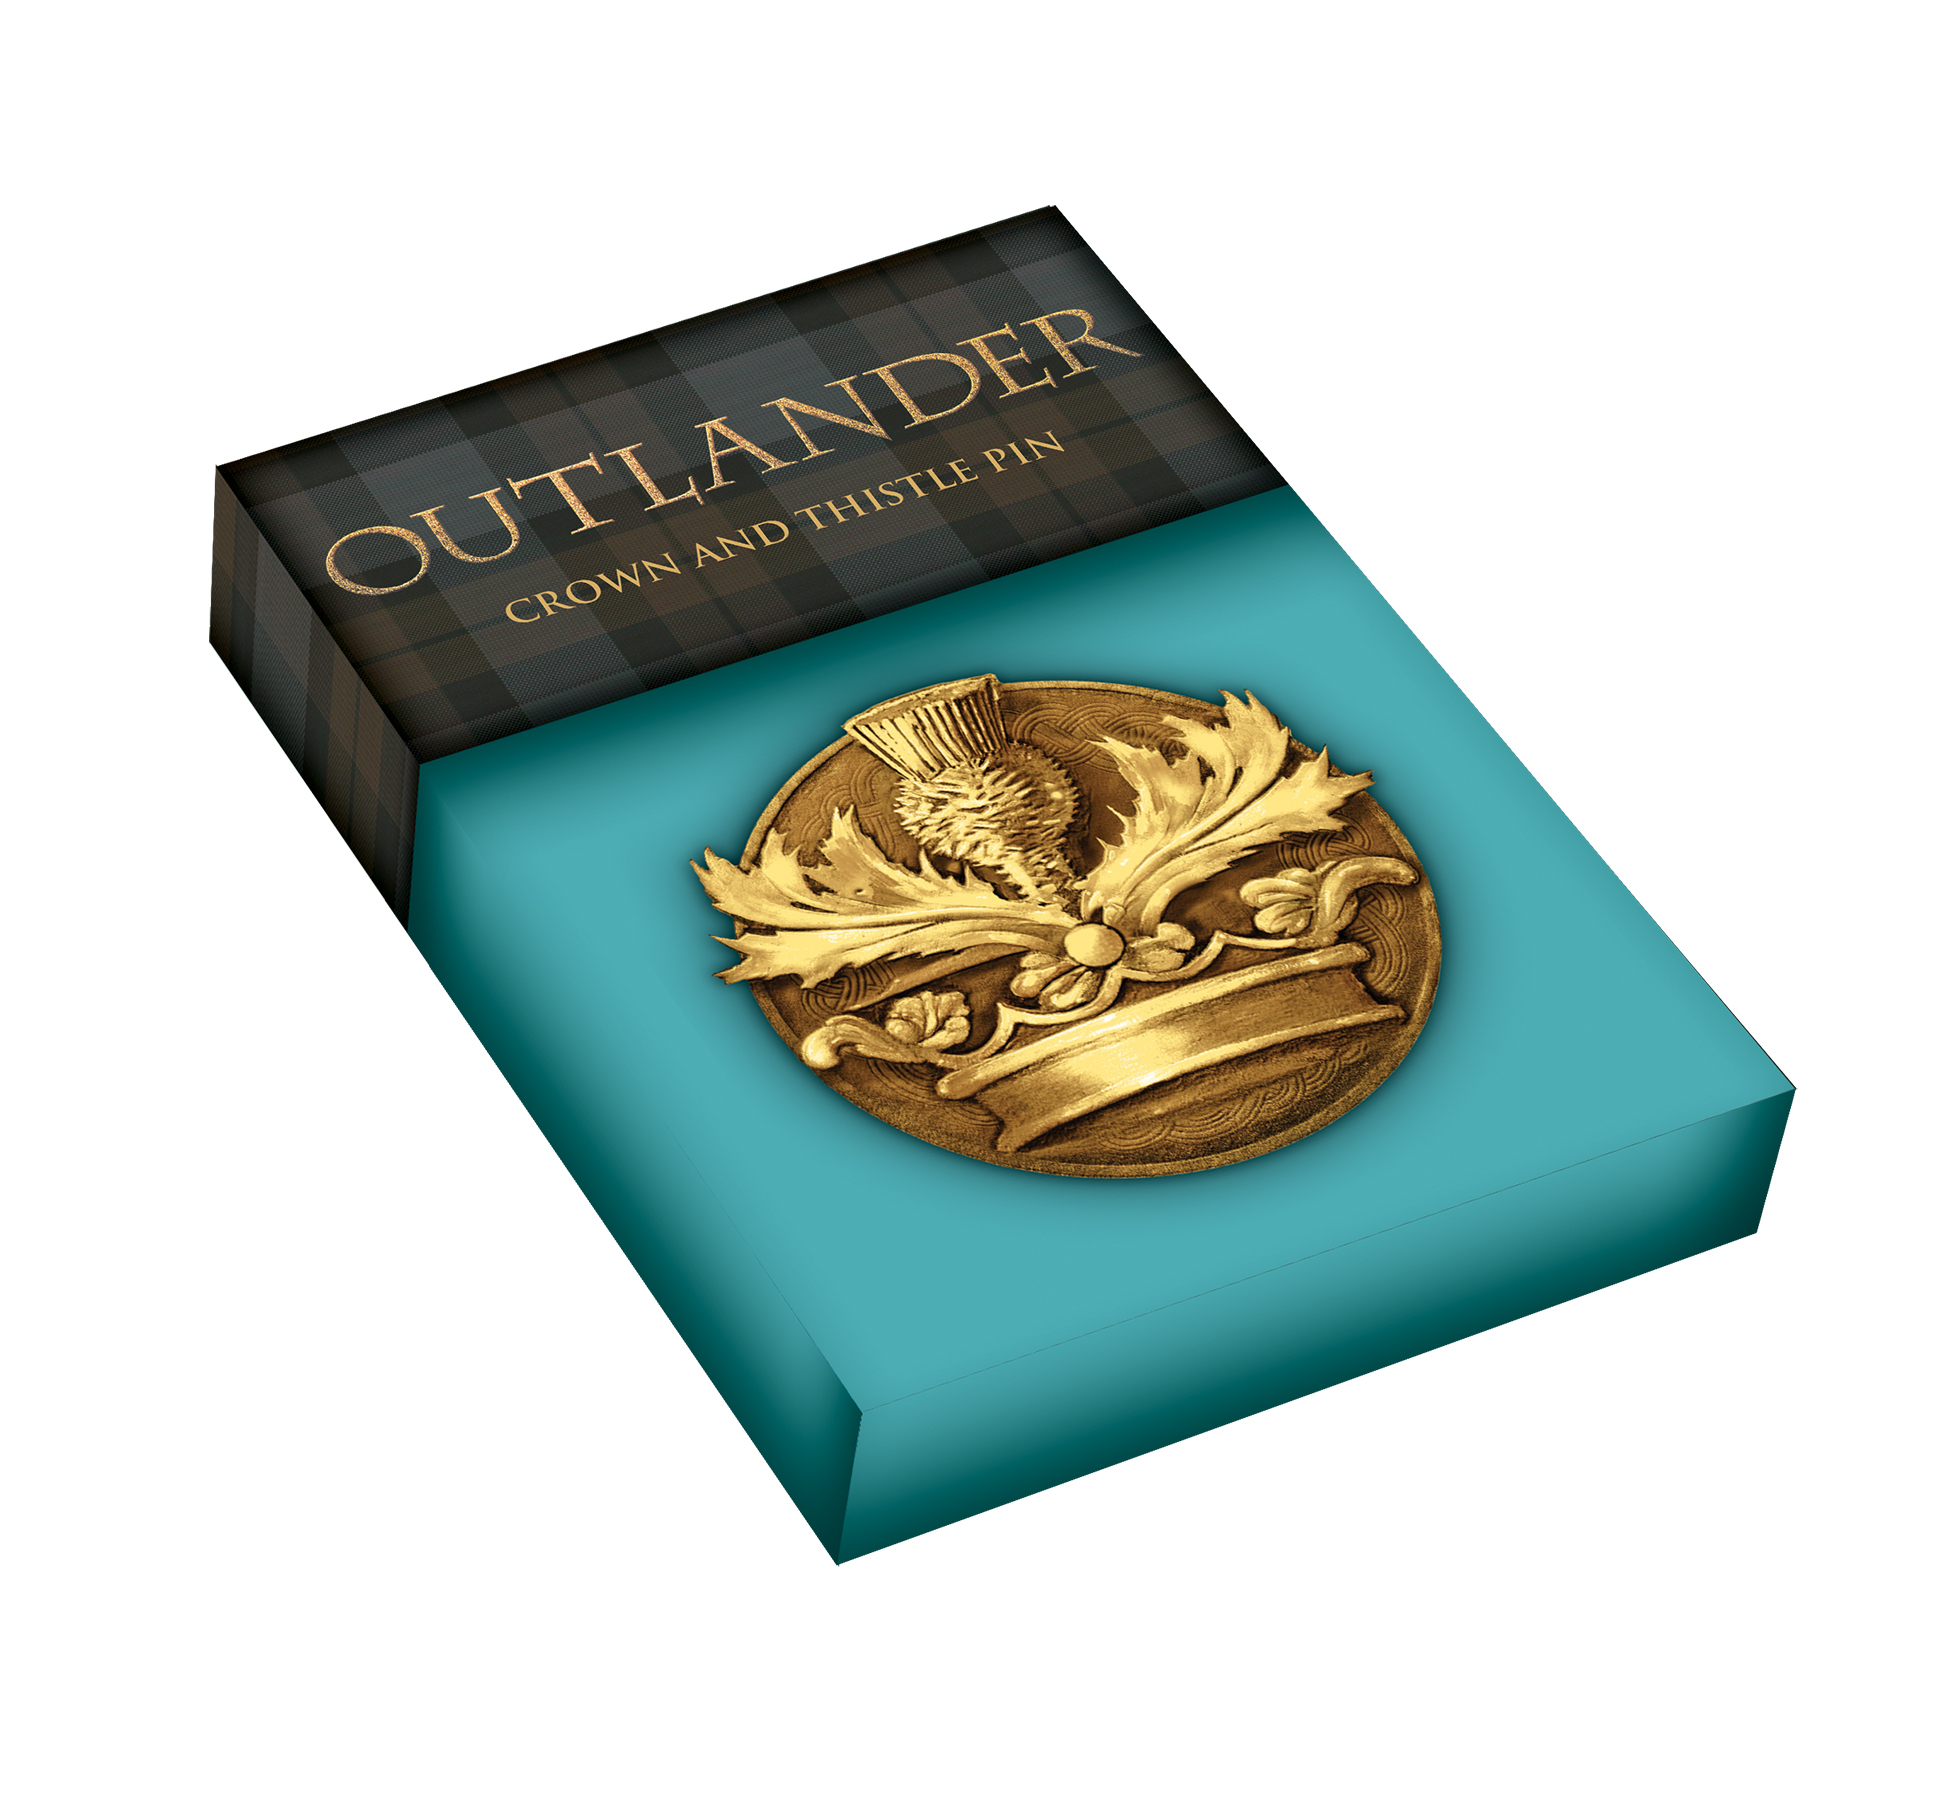 OUTLANDER PIN CROWN & THISTLE